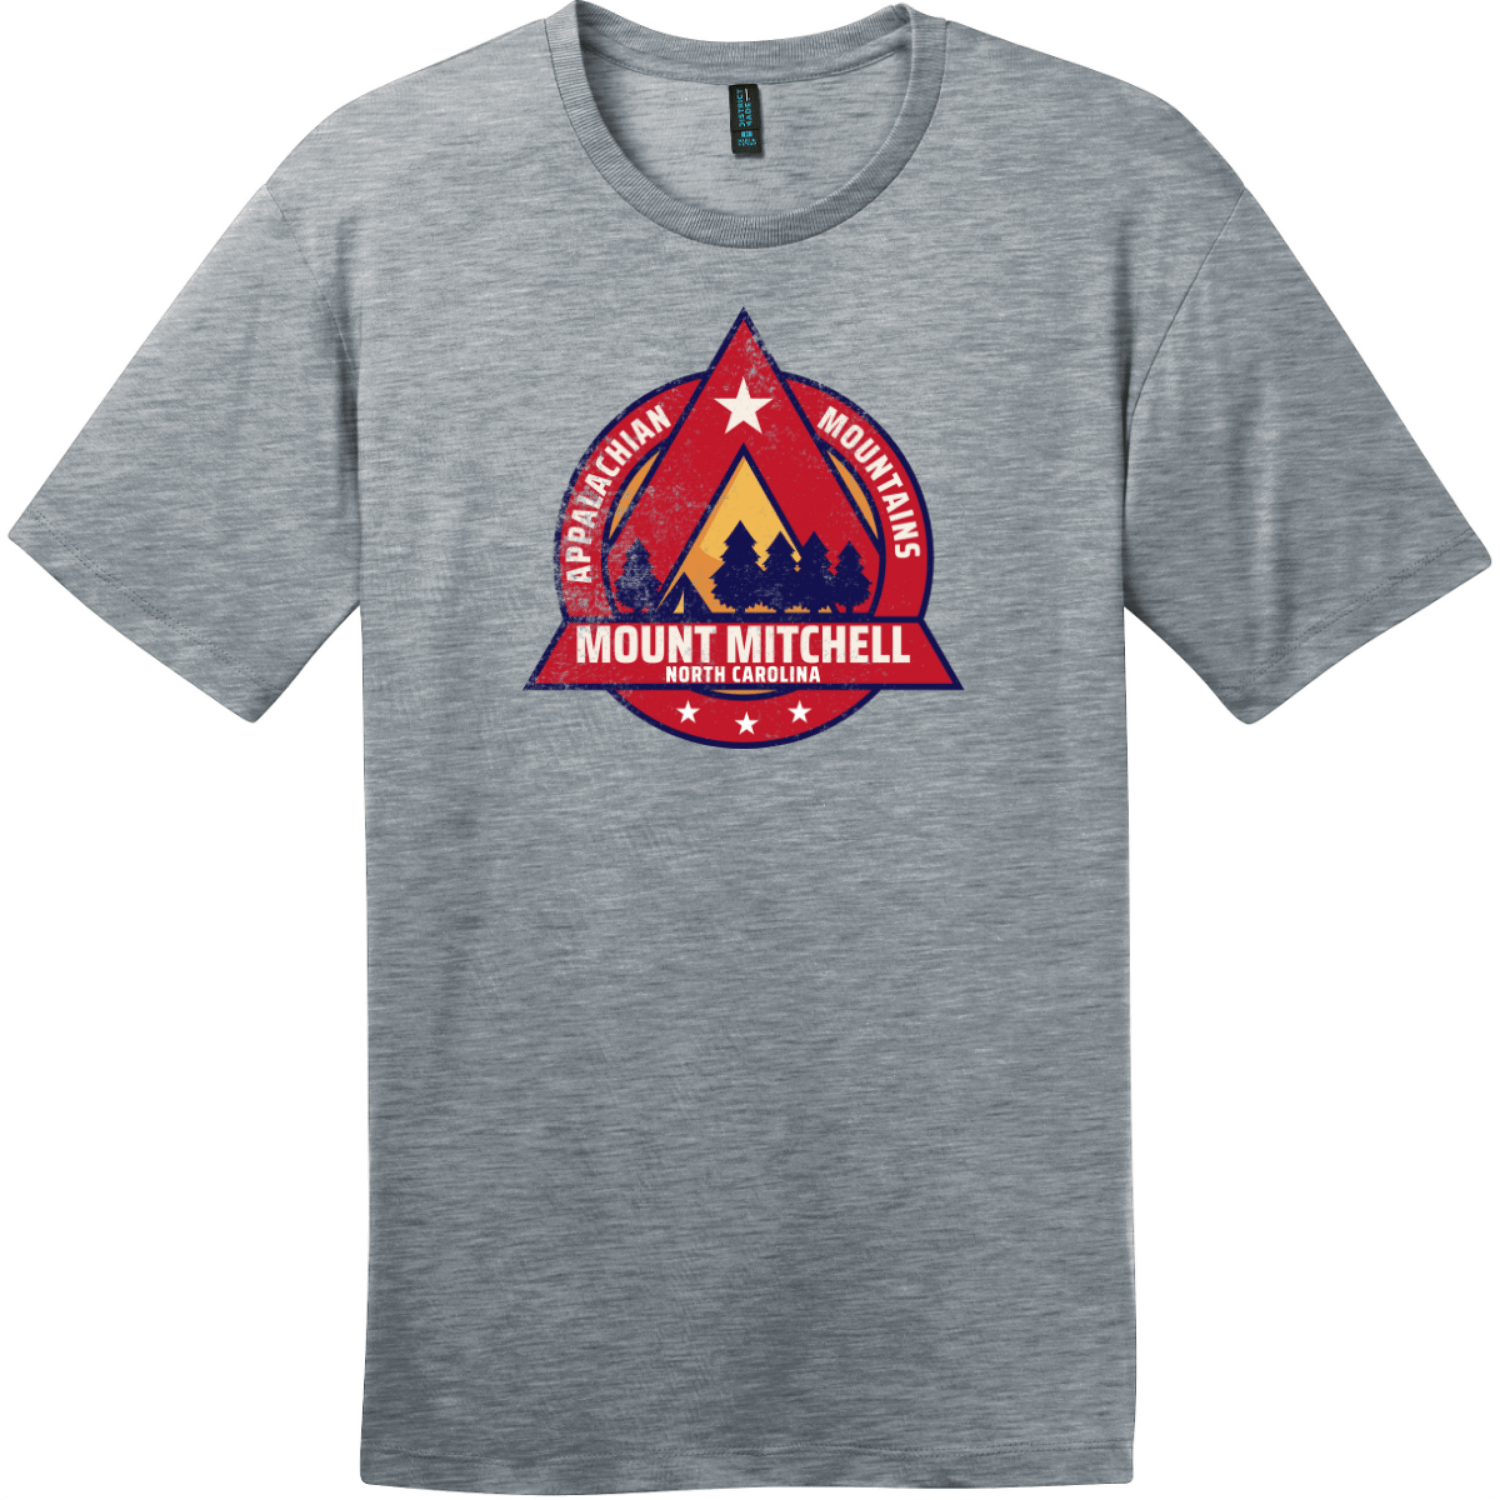 Mount Mitchell North Carolina Camping T-Shirt Heathered Steel District Perfect Weight Tee DT104